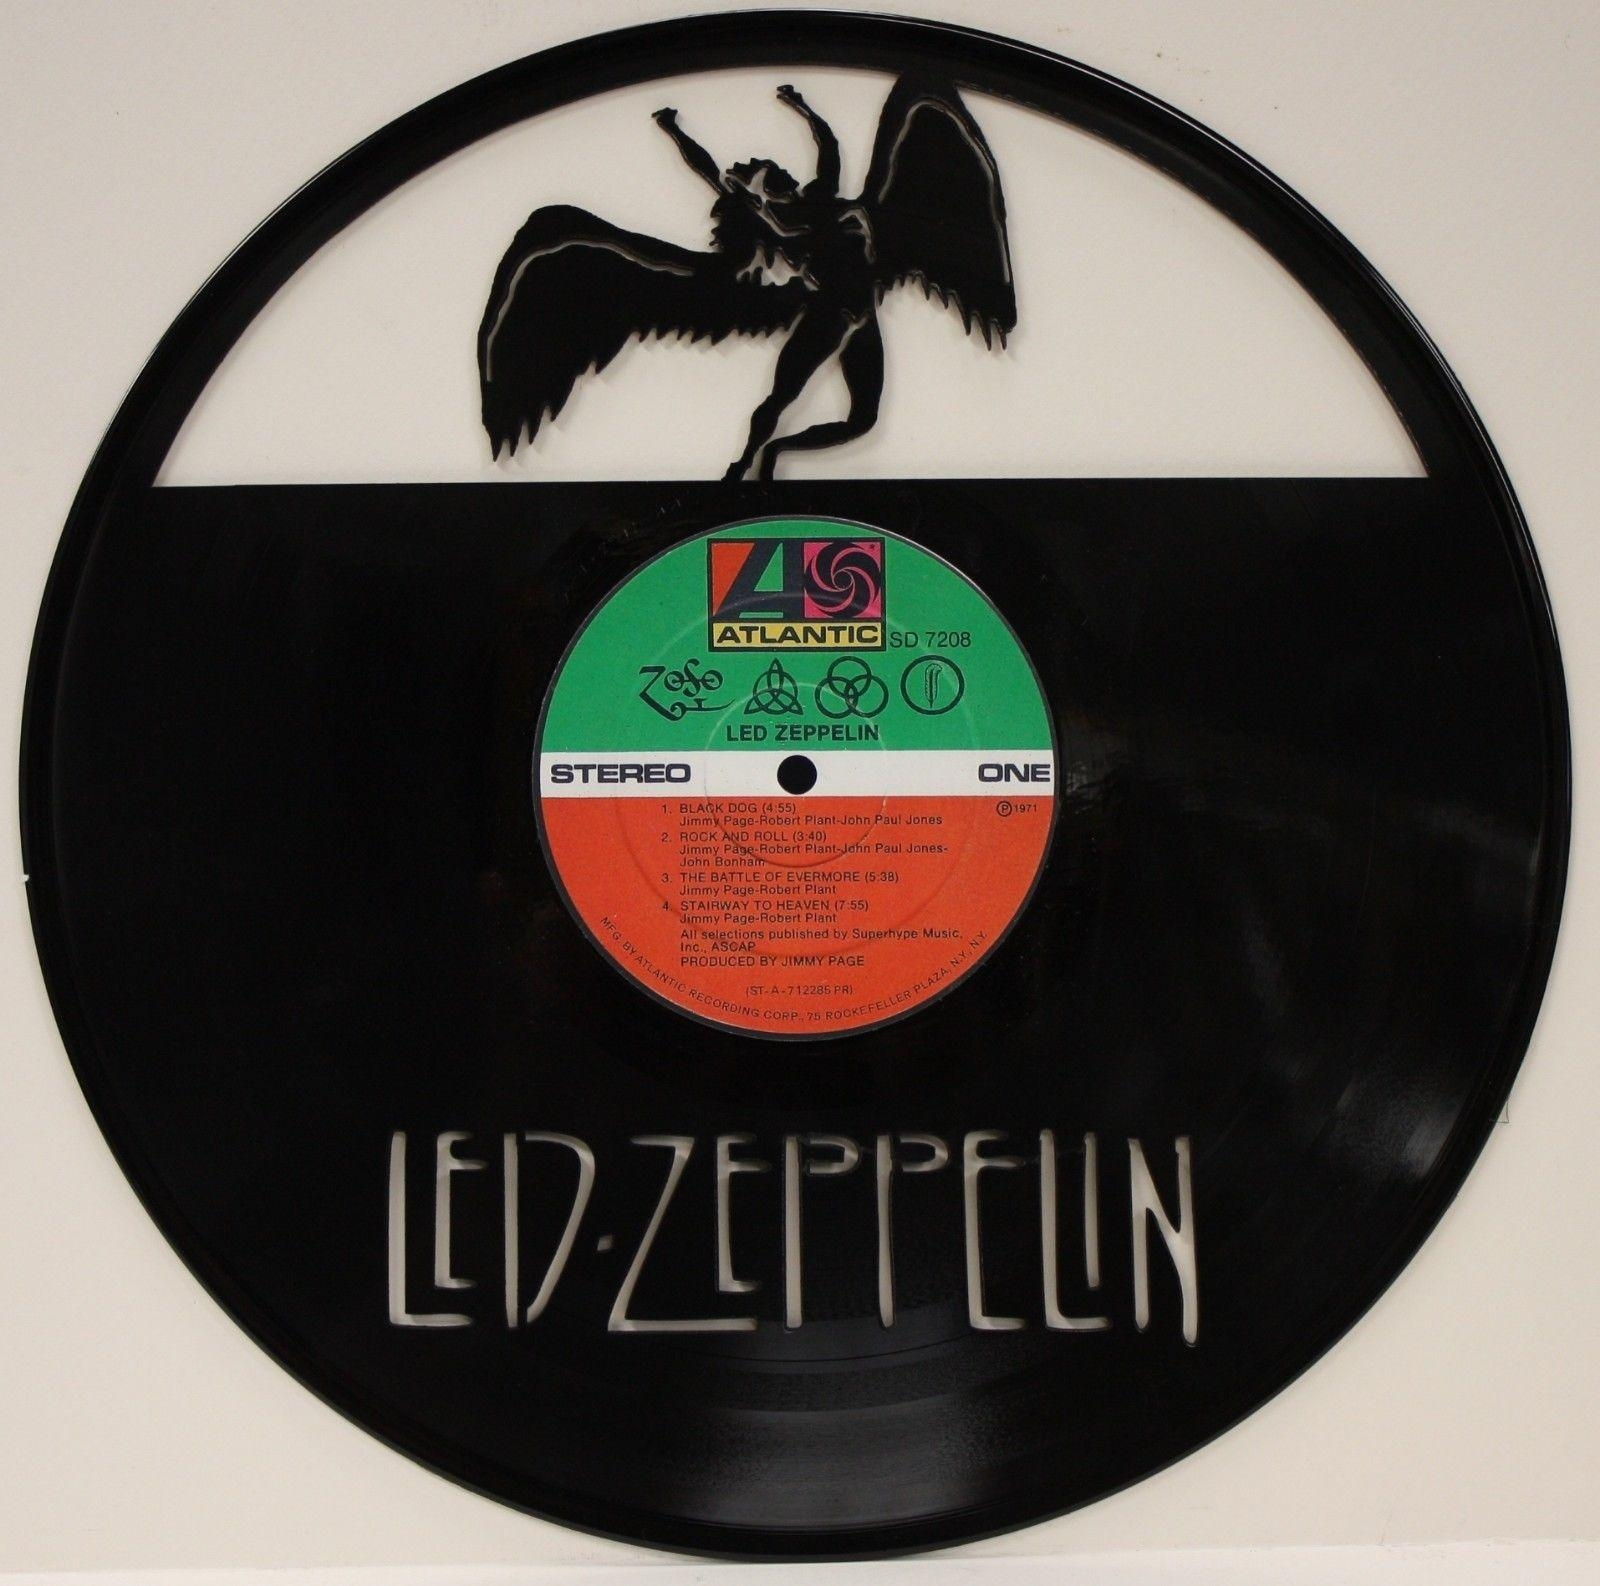 """Led Zeppelin Vinyl 12"""" Lp Record Laser Cut Wall Art Display – Gold With Regard To Led Zeppelin Wall Art (View 6 of 20)"""